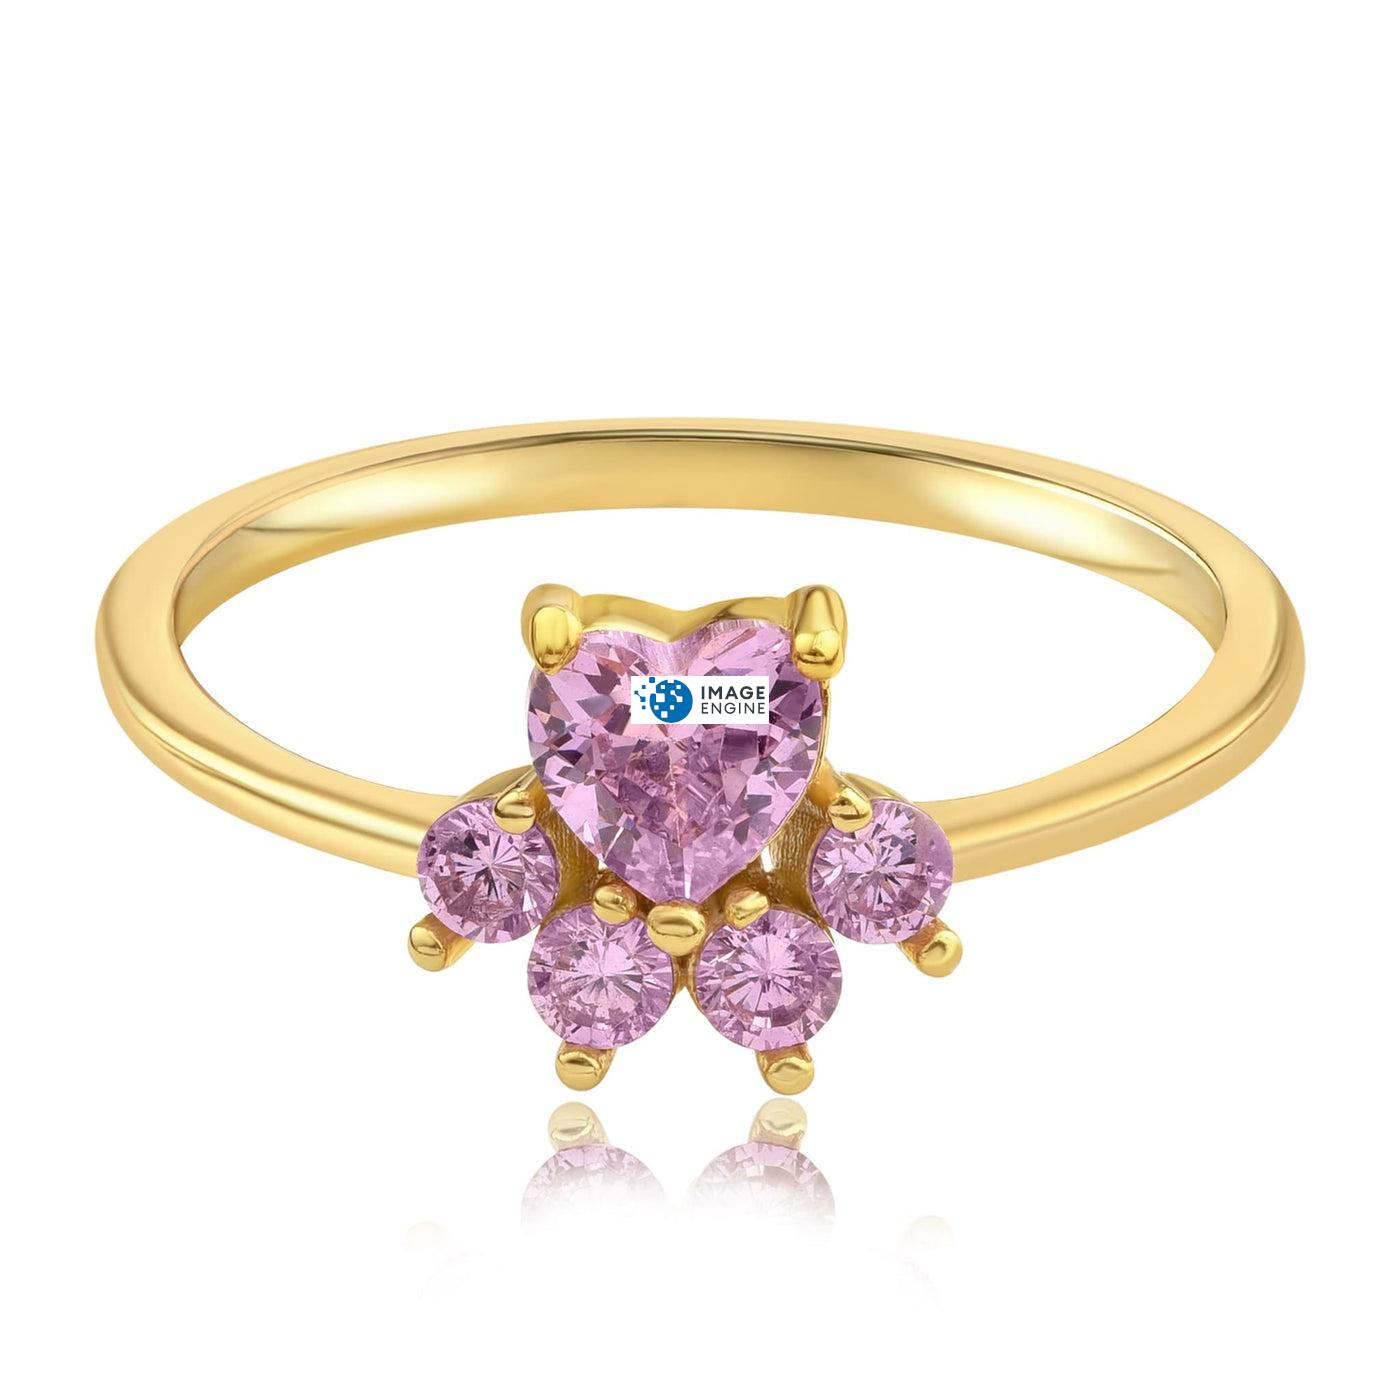 Bella Paw Rose Quartz Ring - Front View Facing Down - 18K Yellow Gold Vermeil